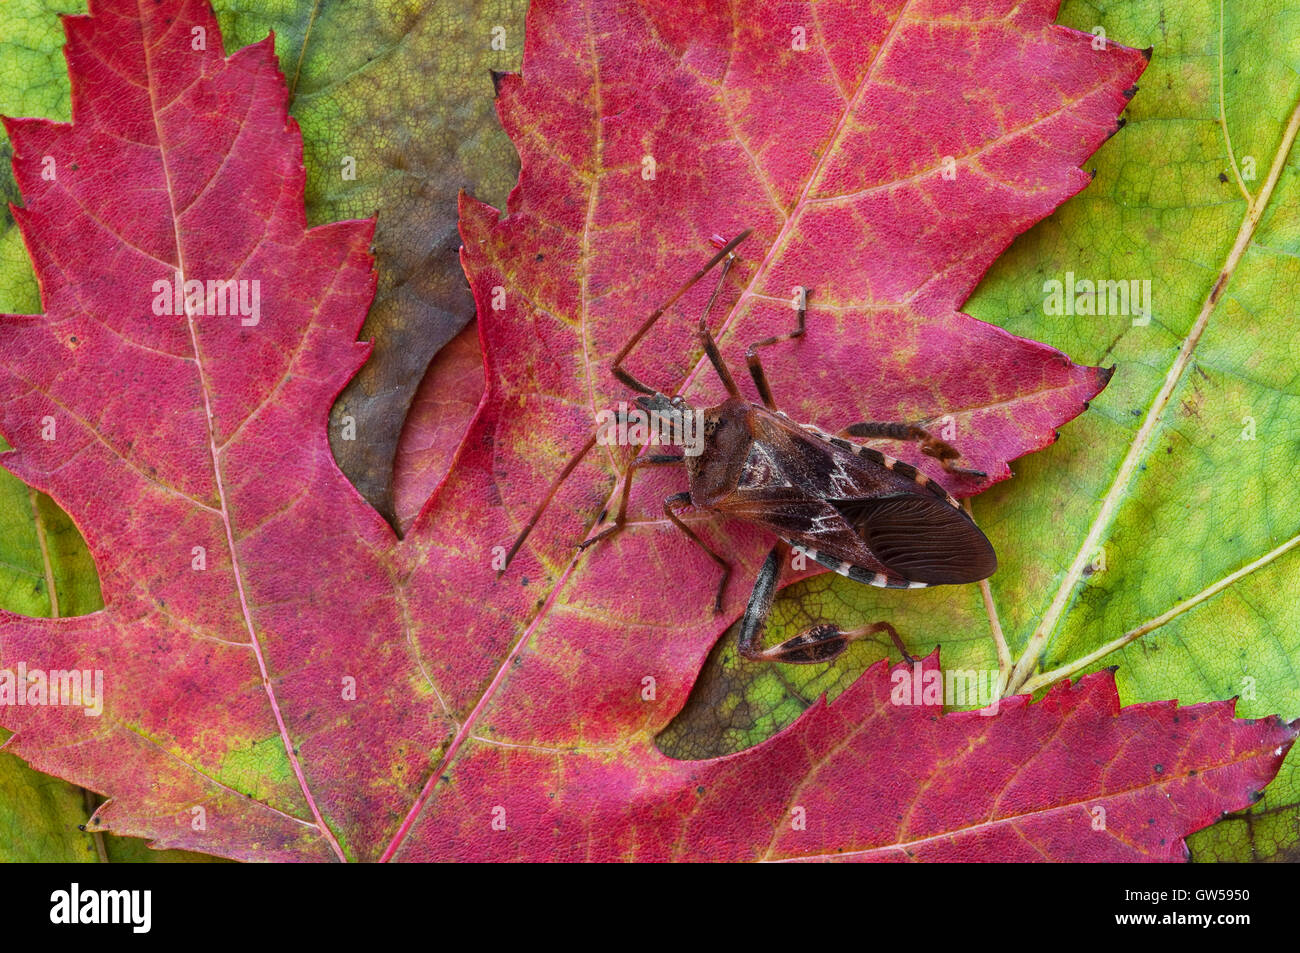 Leaffooted bug, Western Conifer Seed Bug (Leptoglossus occidentalis) on Silver Maple leaf (Acer saccharinum), Fall, - Stock Image